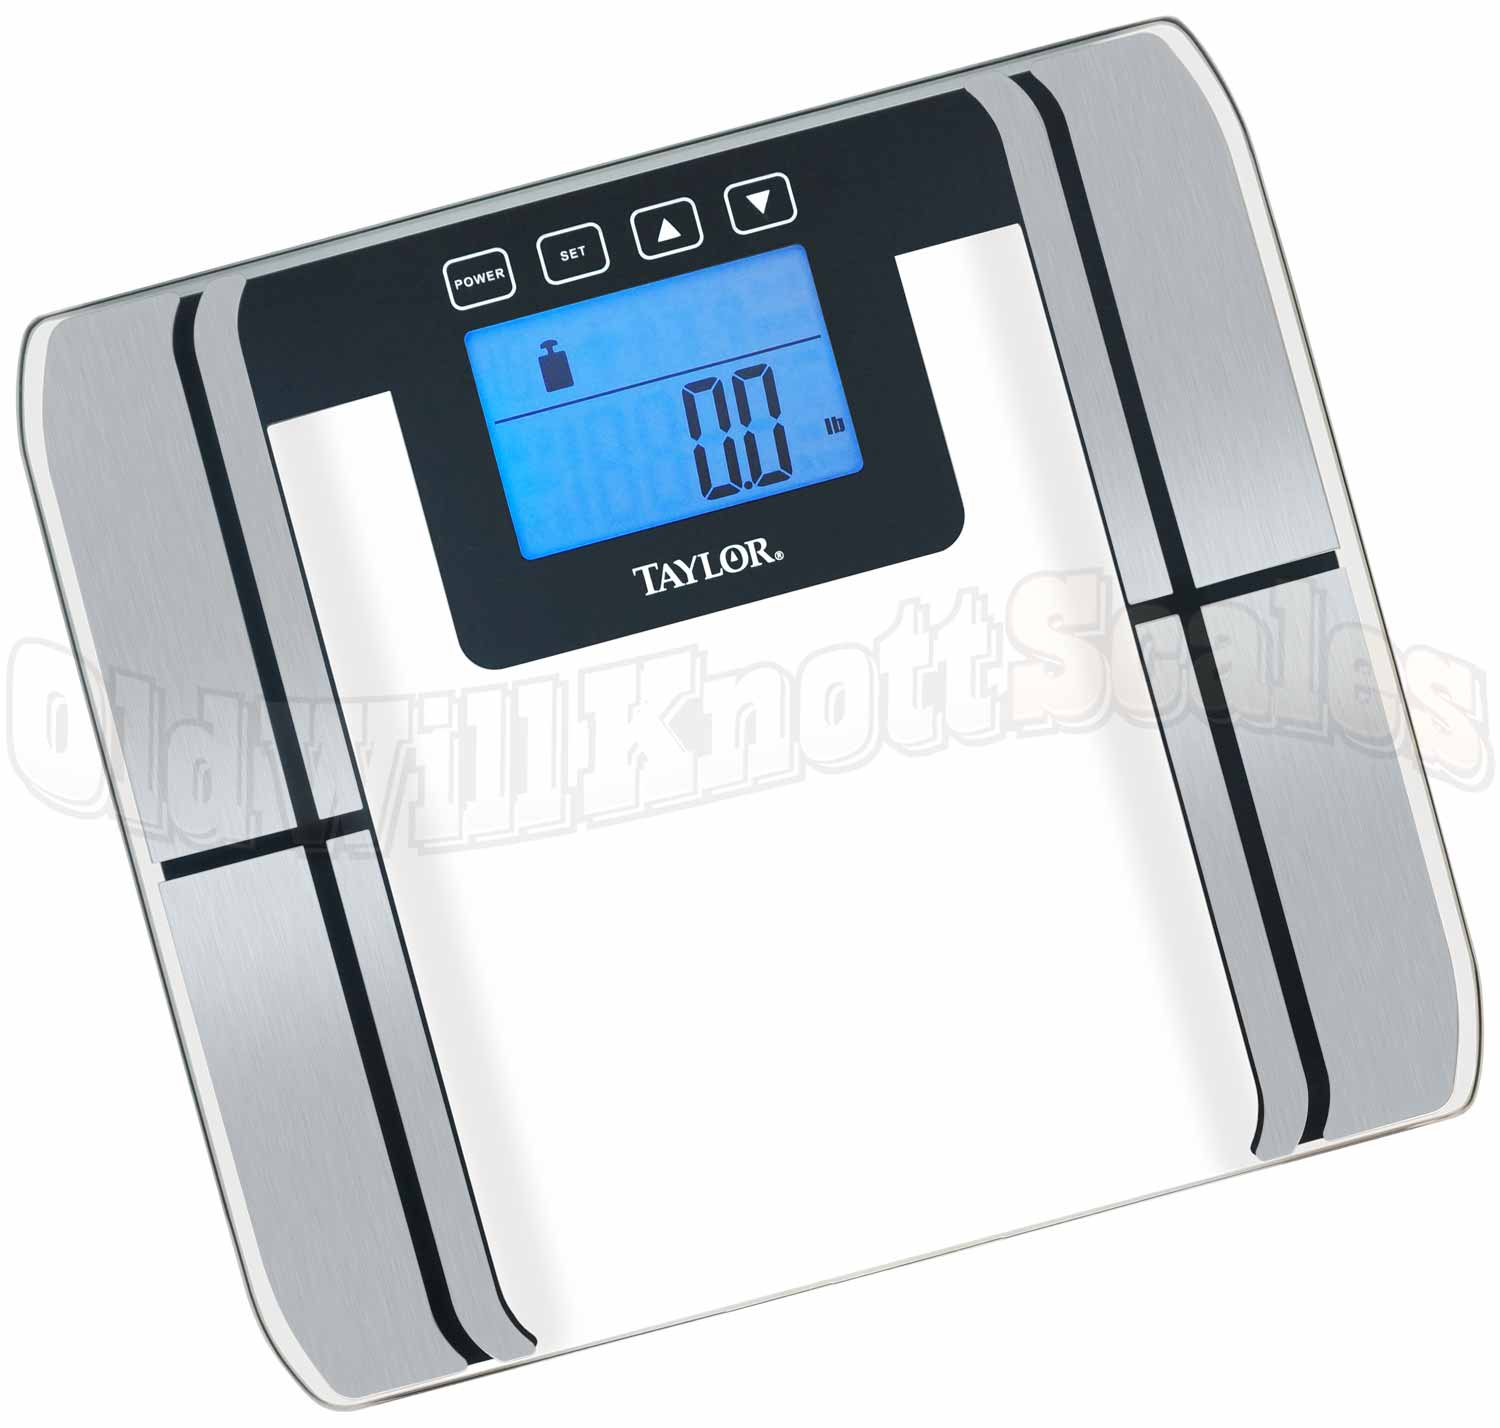 Taylor 5761 Digital Body Fat Water Muscle and Bone Scale